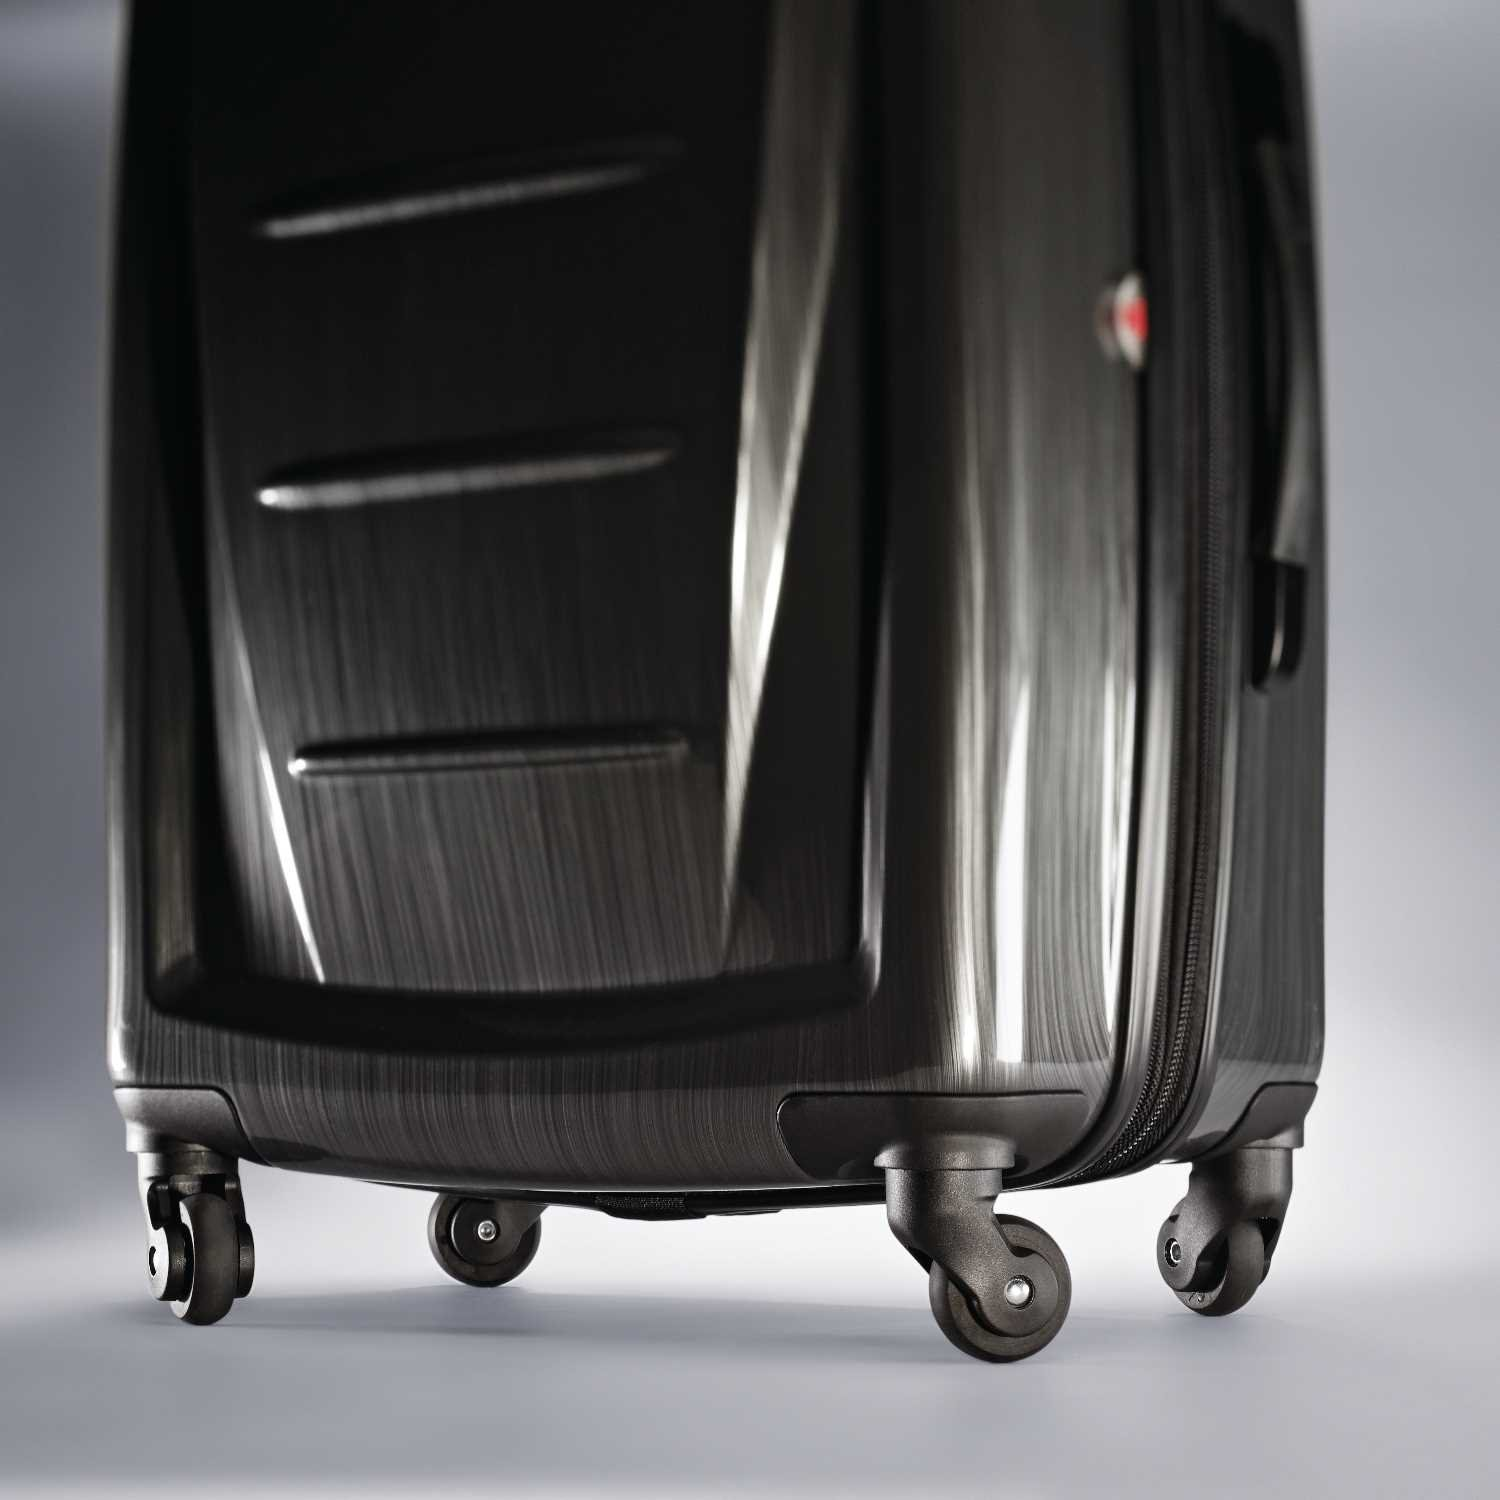 Samsonite Winfield 2 Hardside 24'' Luggage, Brushed Anthracite by Samsonite (Image #3)